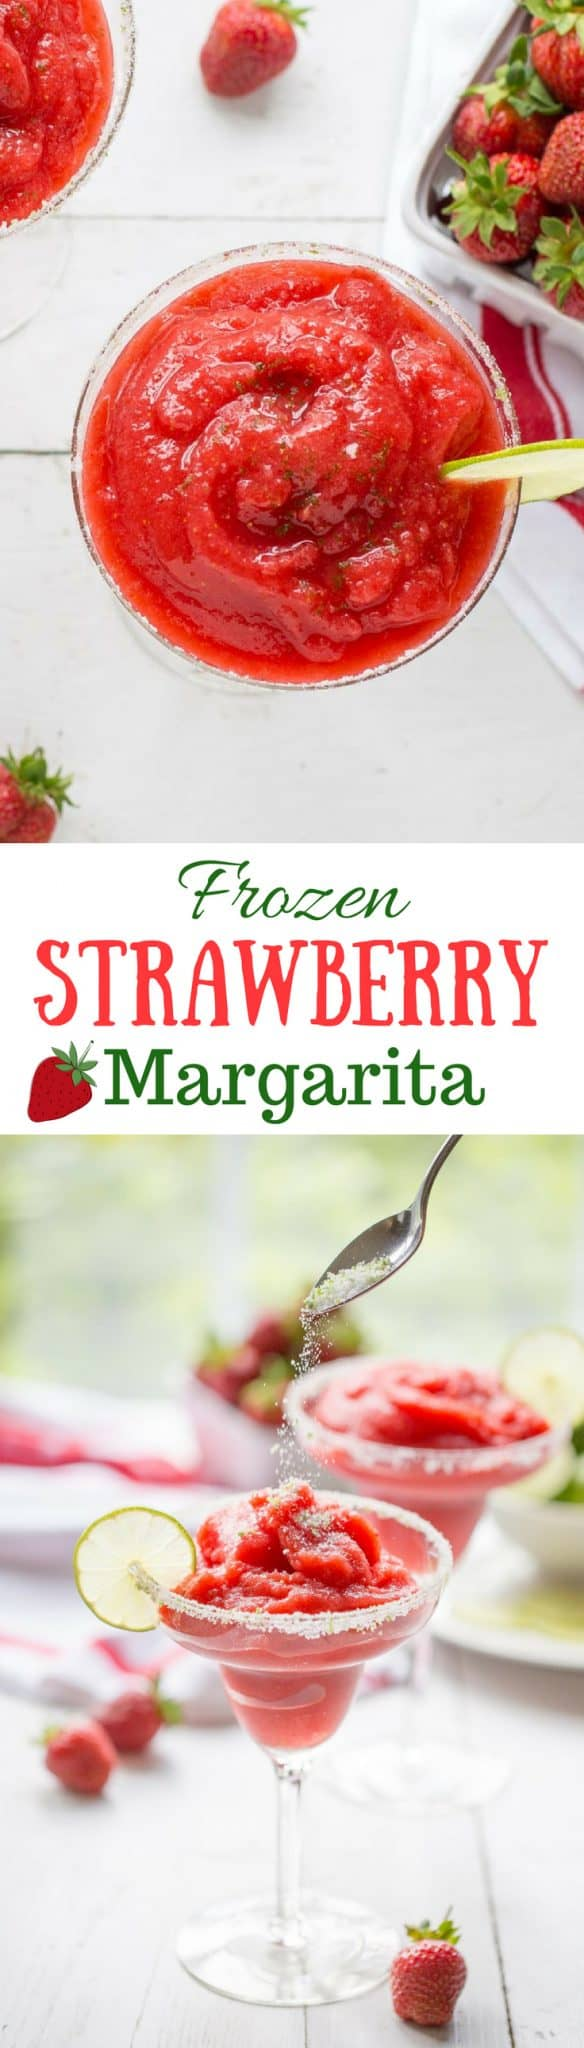 Frozen Strawberry Margarita ~ a delicious cross between a sorbet and a Margarita, and it's almost good enough to be called a dessert! www.savingdessert.com